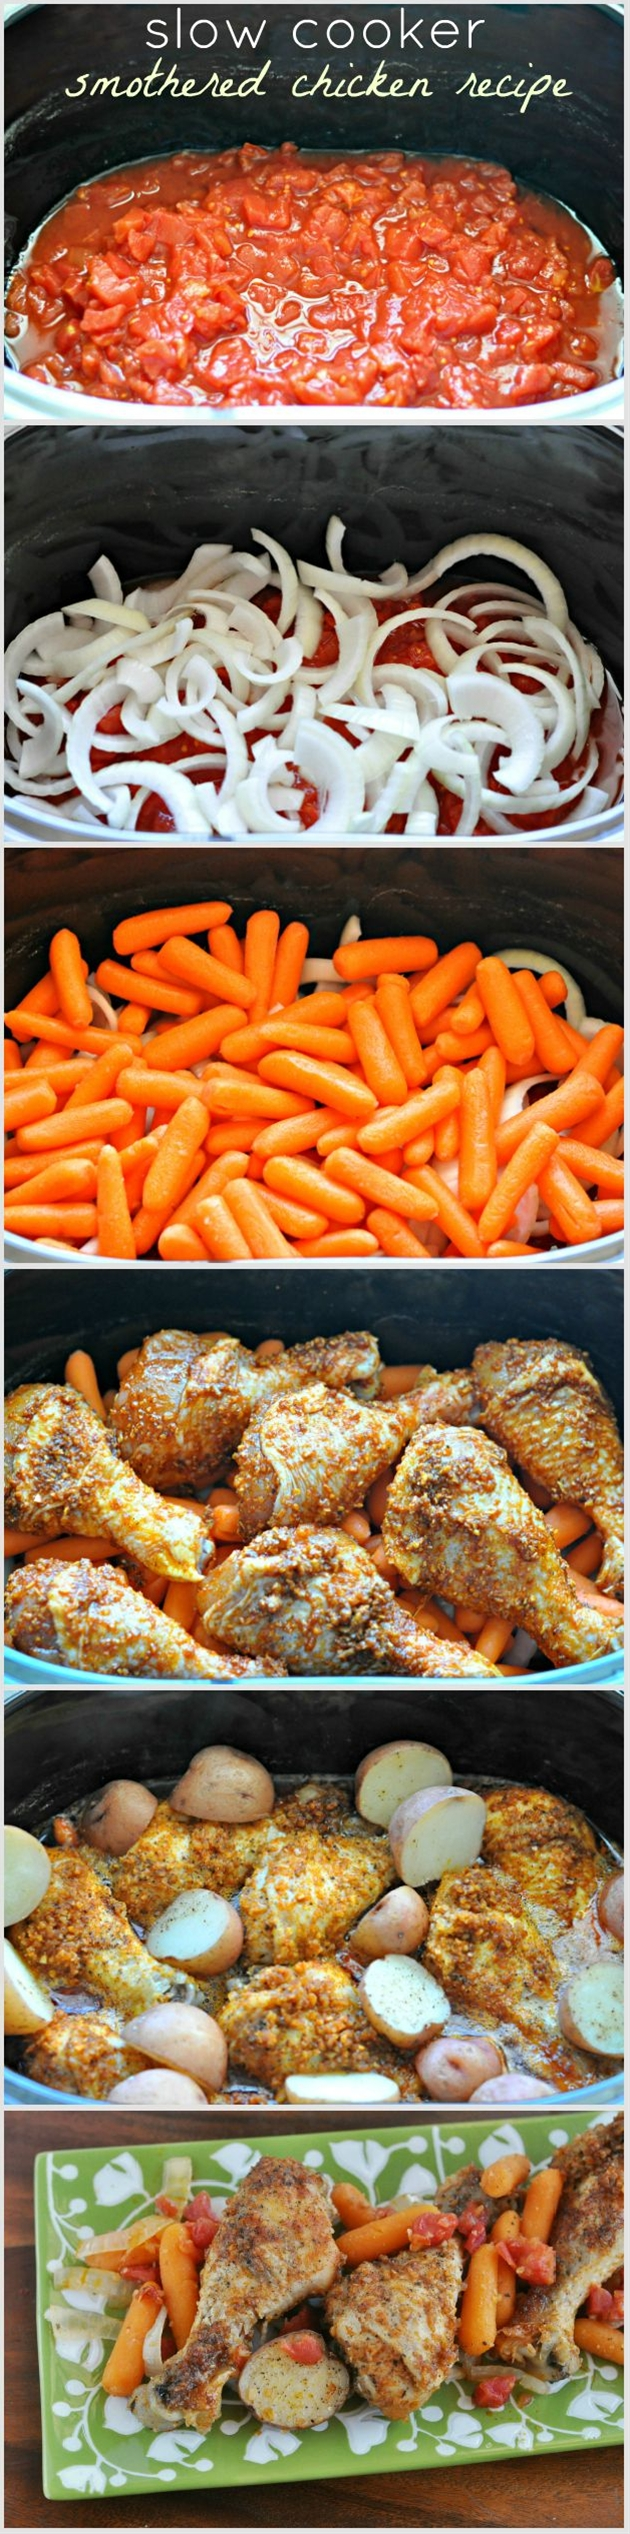 Ingredients:  1 - 28 oz can petite diced tomatoes (Hunt's),  1 large Vidalia onion, sliced,  2 cups baby carrots,  2 packets McCormick Swiss Steak Seasoning,  4 tablespoons olive oil,  ½ teaspoon minced garlic,  6-8 chicken legs.